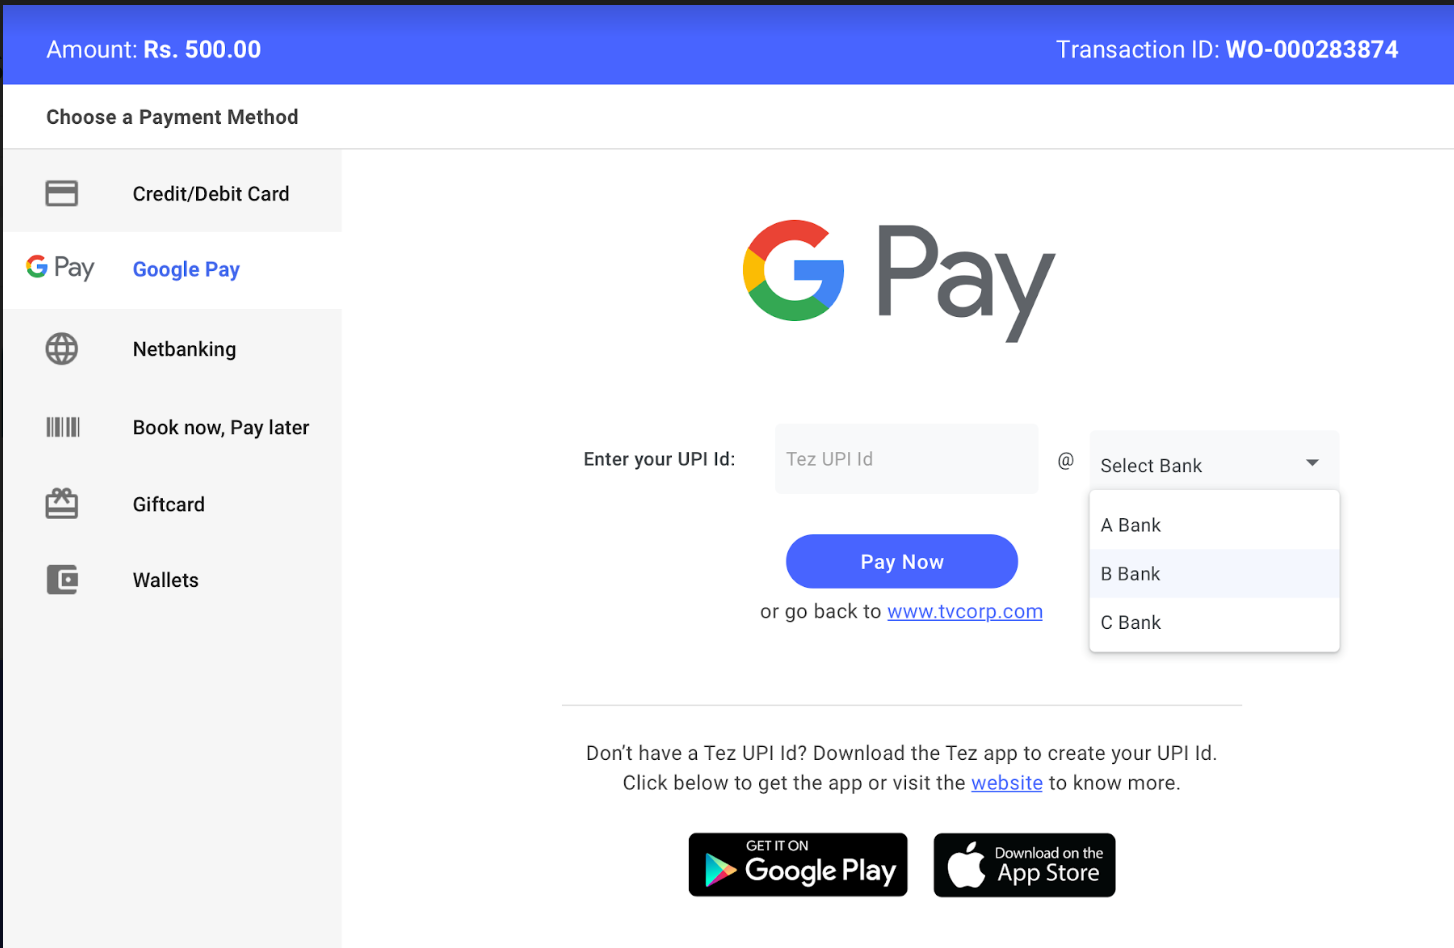 Pay with Google pay